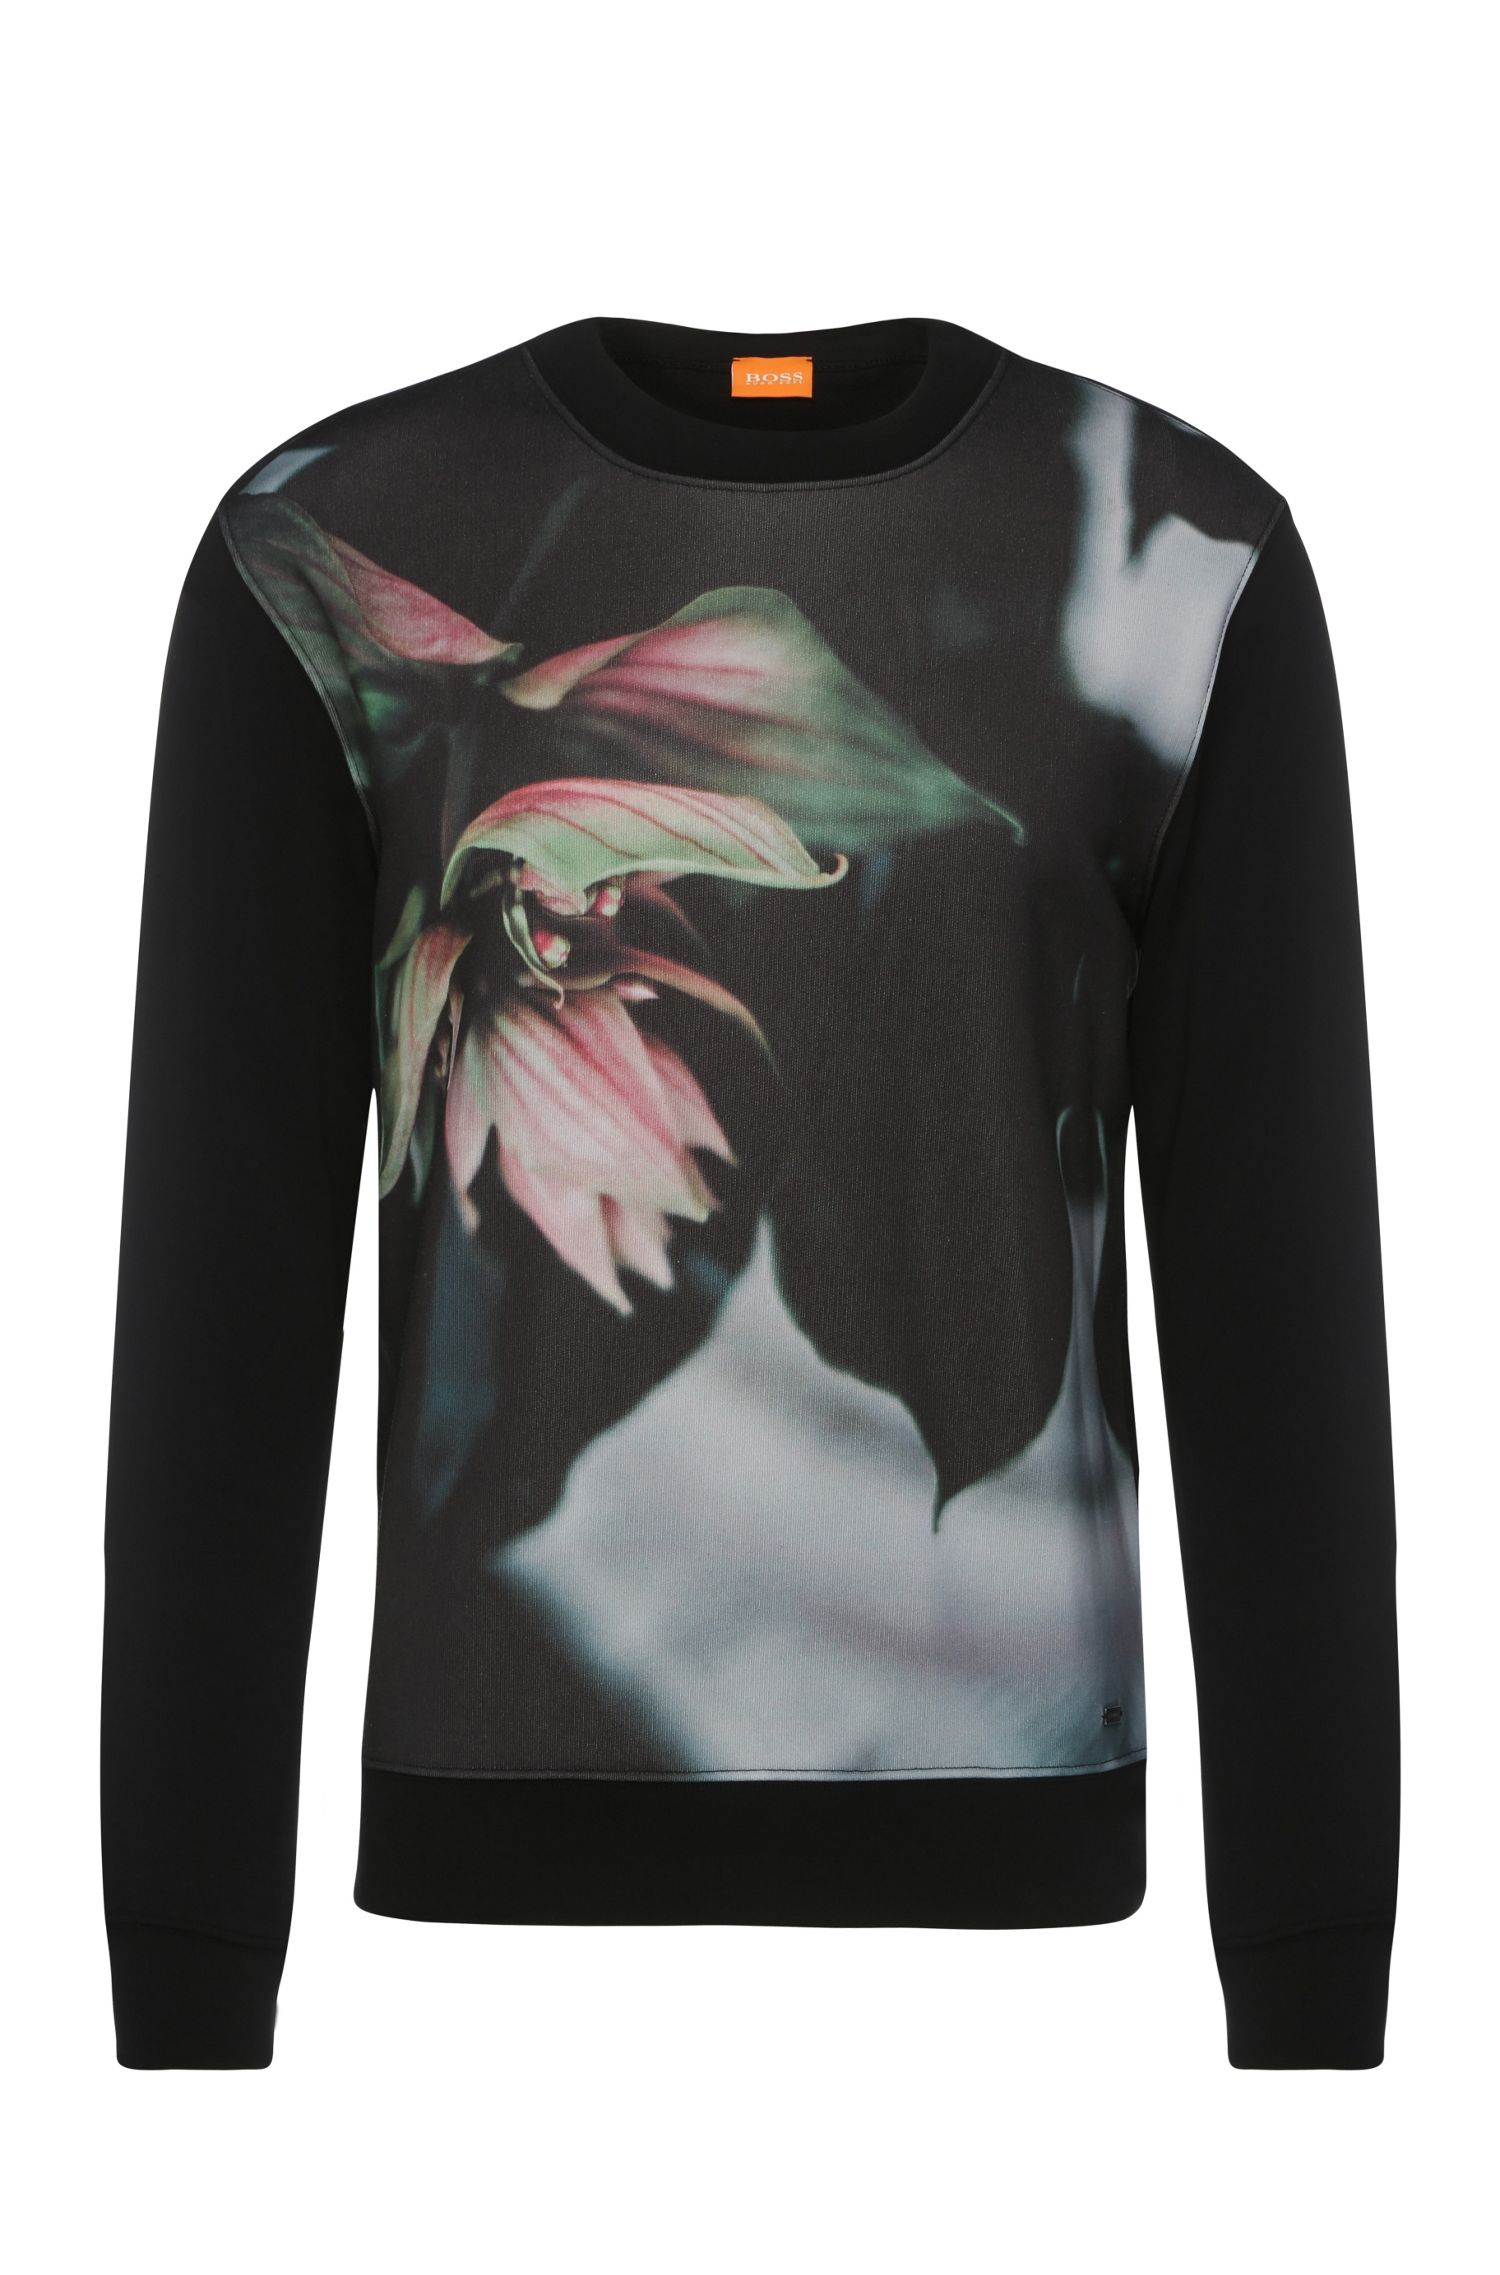 Cotton Lily Print Sweatshirt | Whit